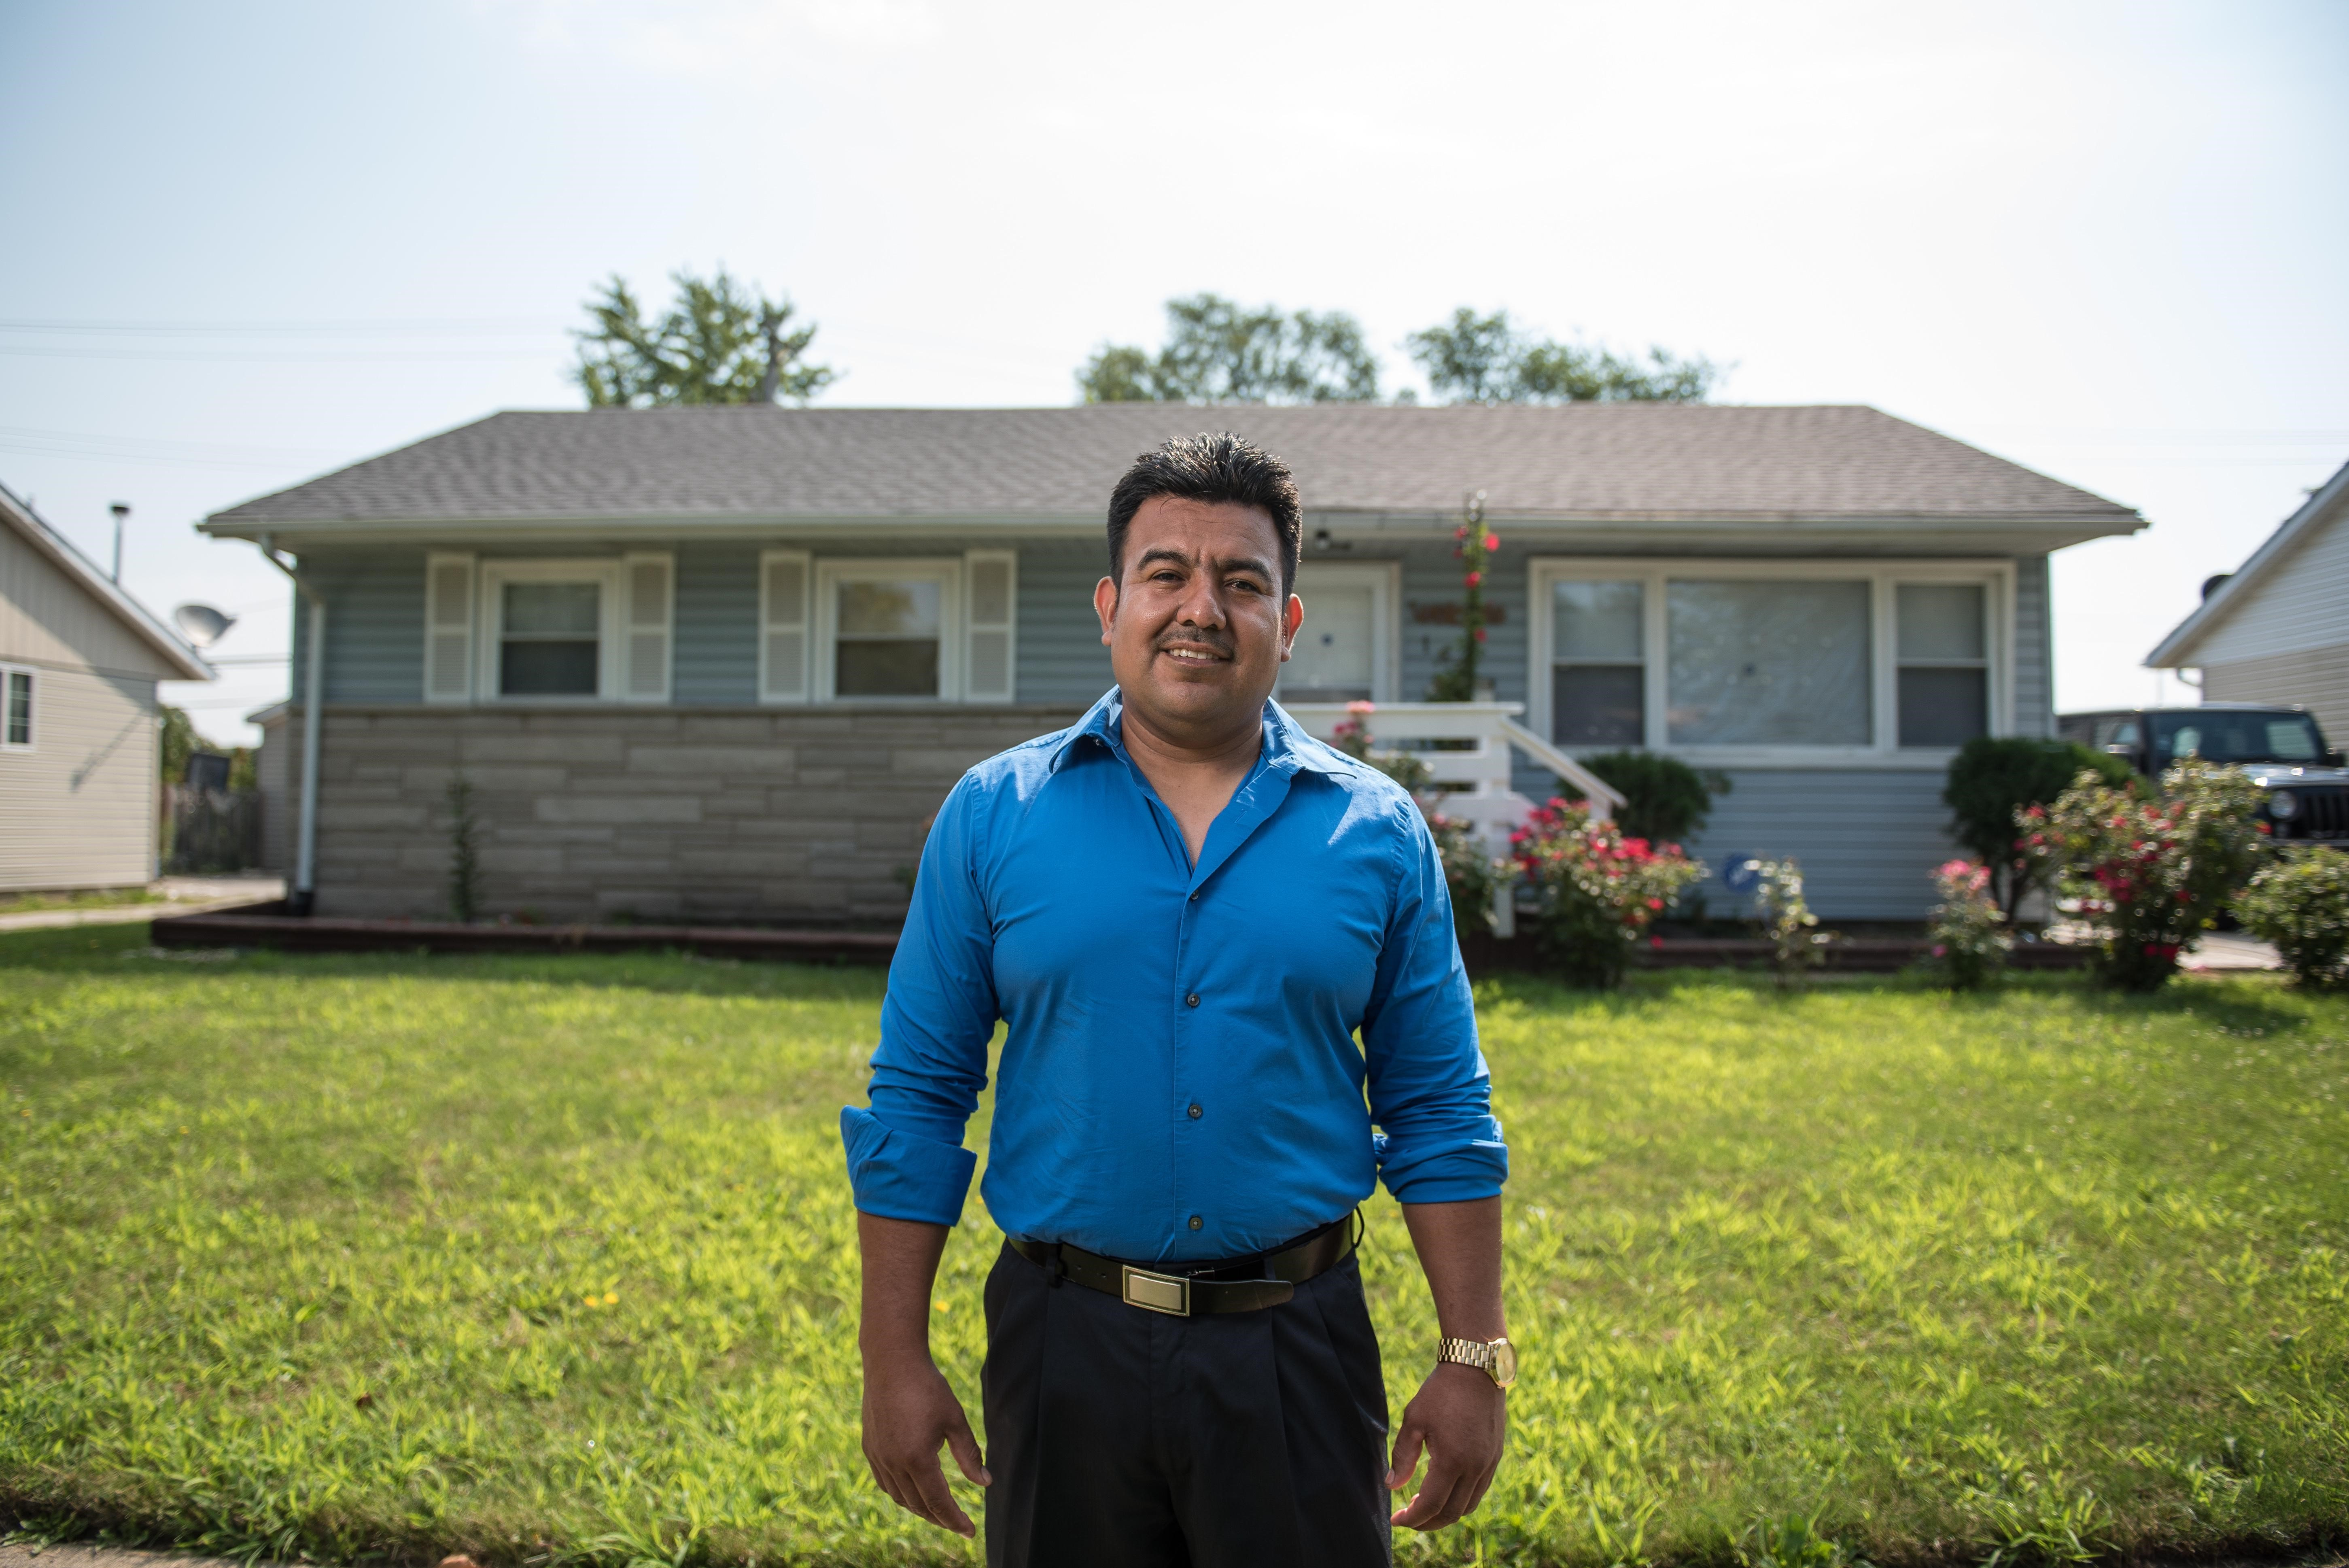 Samuel heard about the ITIN Lending Program offered through  Illiana Credit Union and was finally able to secure an affordable home loan.